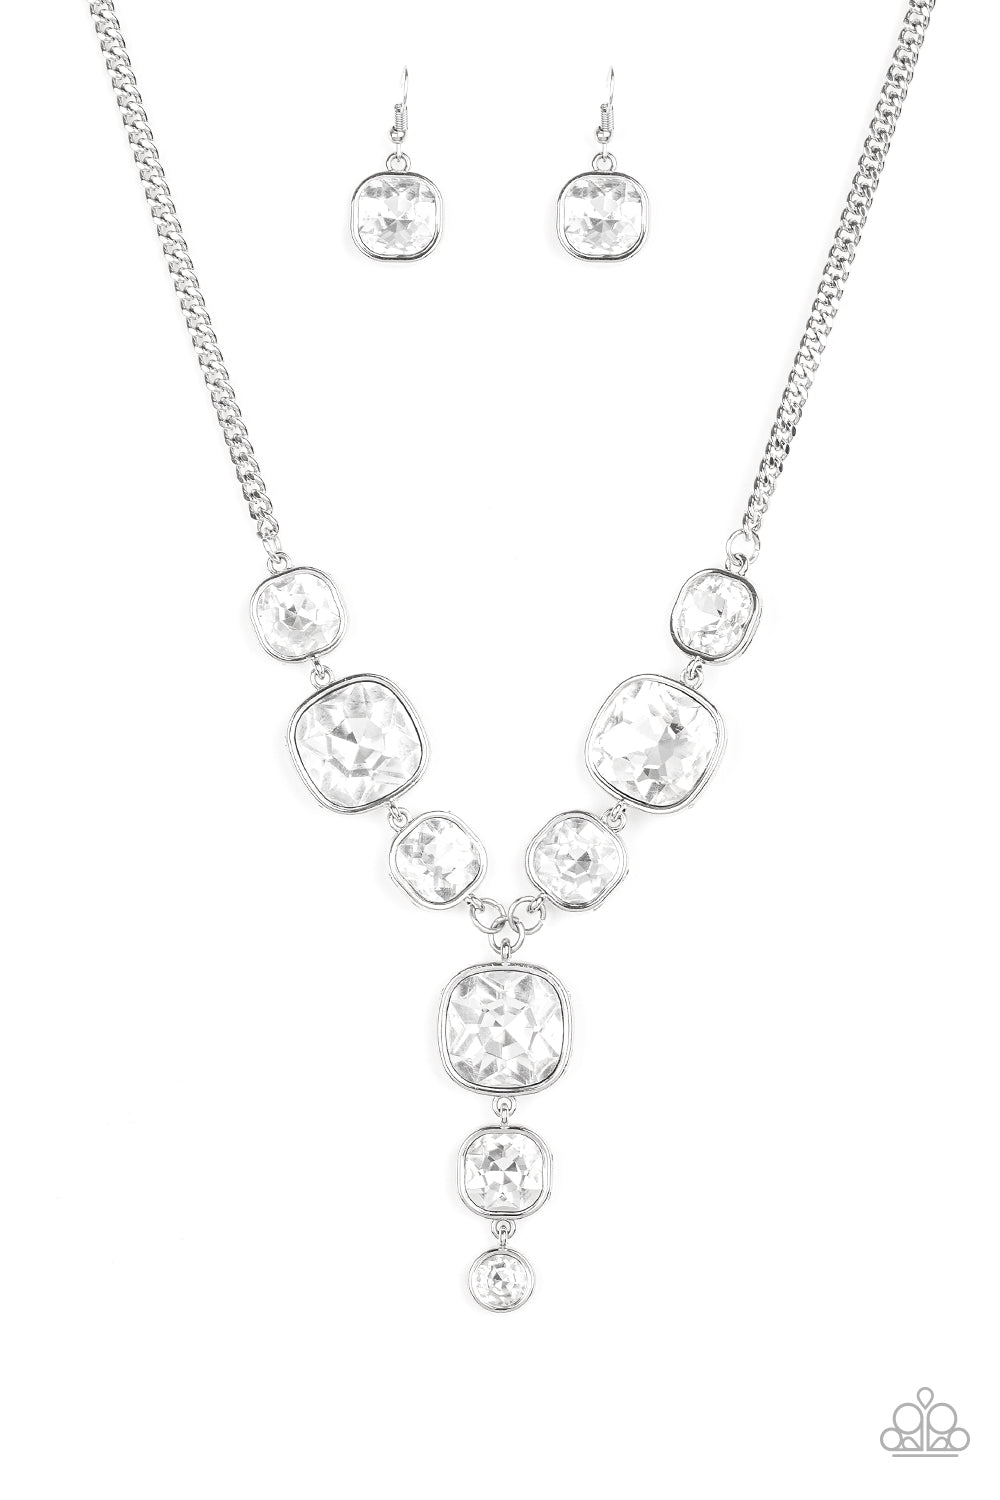 Legendary Luster - White Gem Necklace - Paparazzi Accessories